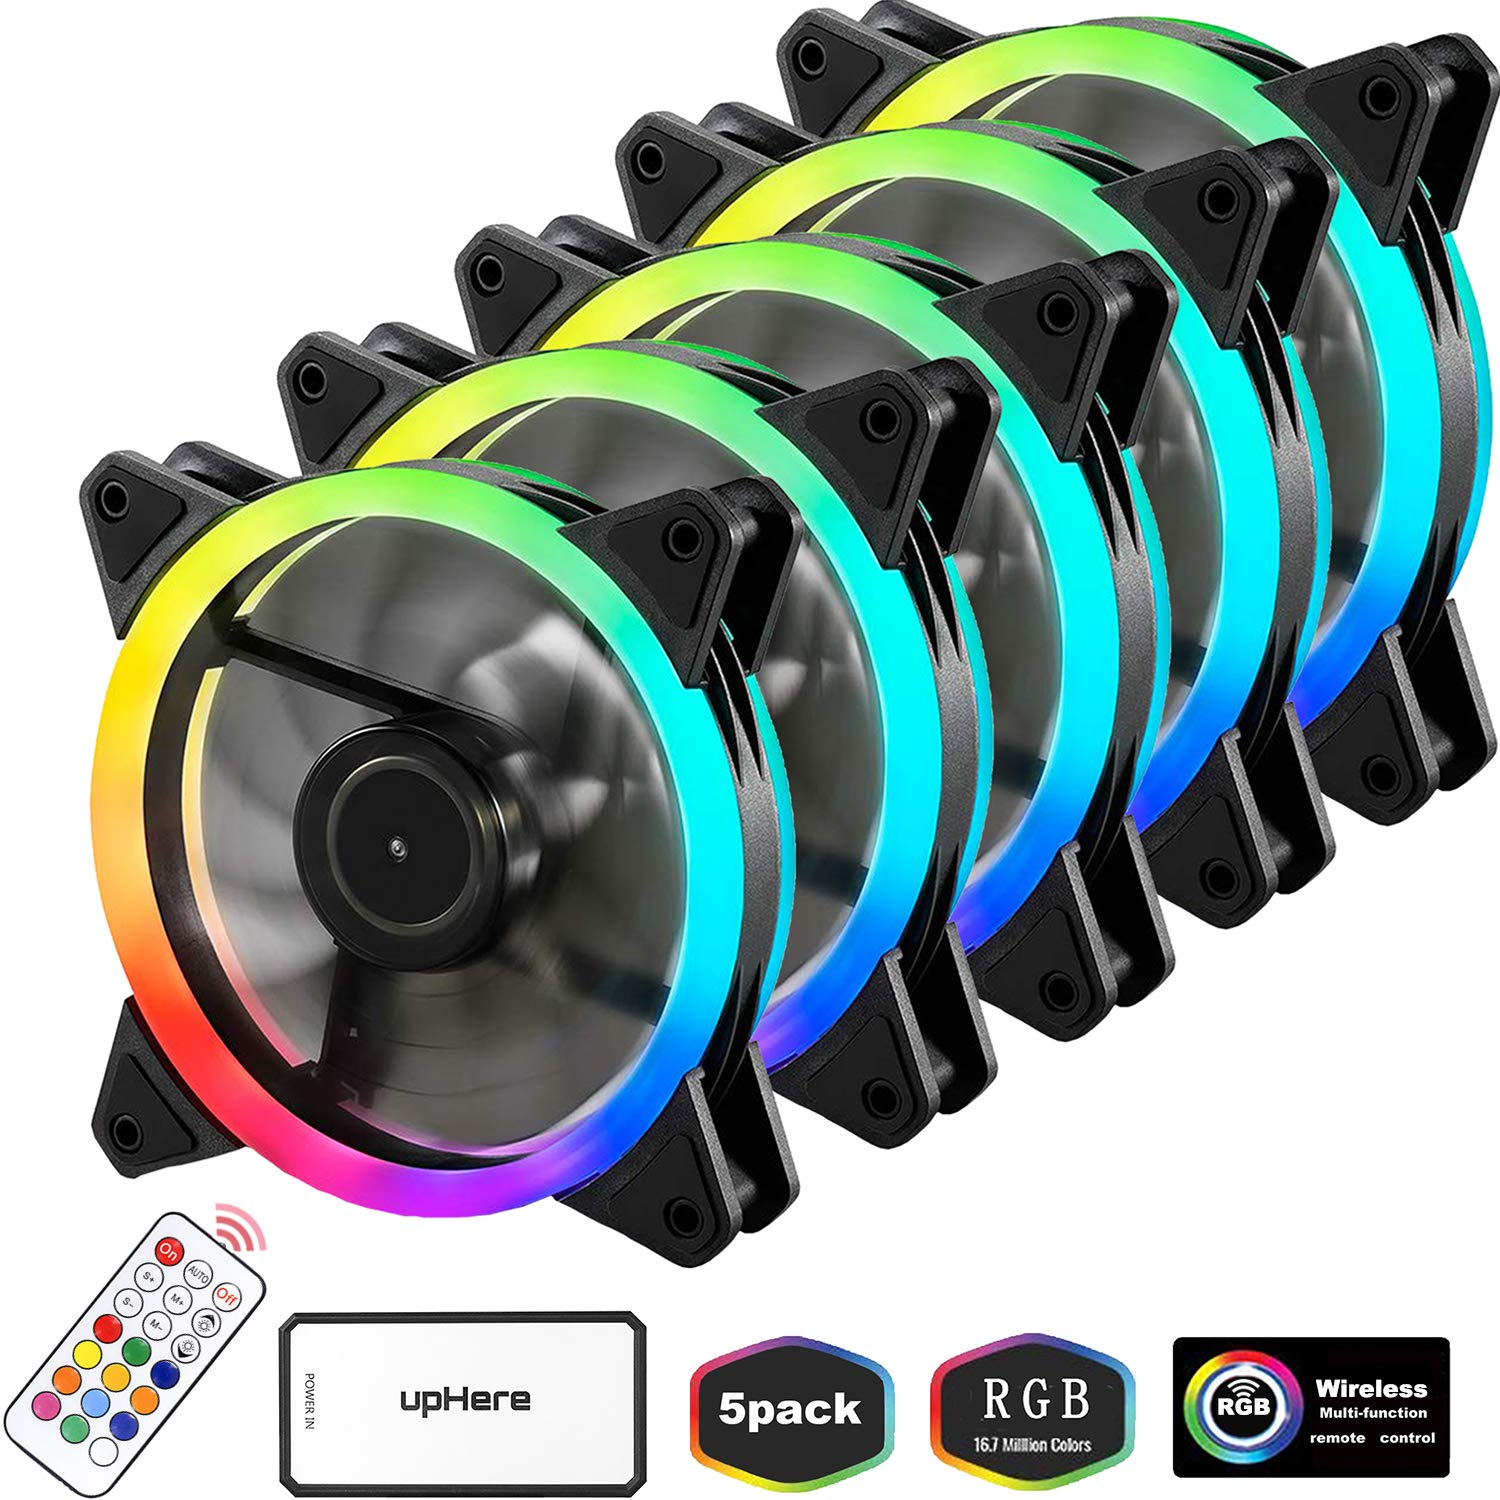 upHere RGB Series Case Fan, Wireless RGB LED 120mm Fan,Quiet Edition High Airflow Adjustable Color LED Case Fan for PC Cases-5 Pack,RGB123-5 by upHere